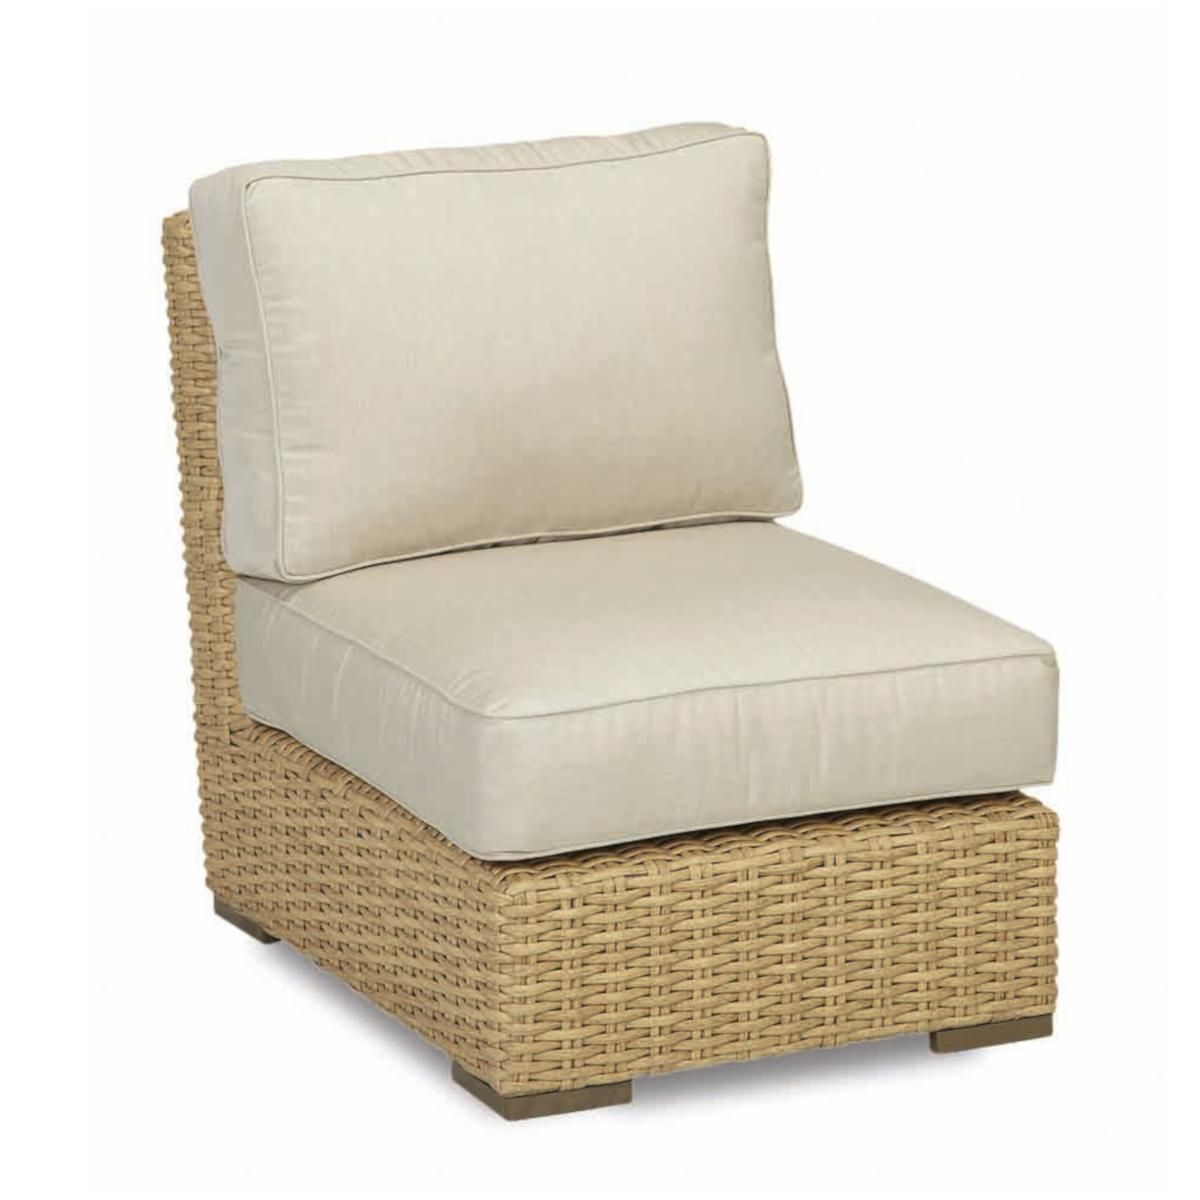 Admirable Leucadia Wicker Patio Armless Club Chair W Sunbrella Canvas Caraccident5 Cool Chair Designs And Ideas Caraccident5Info